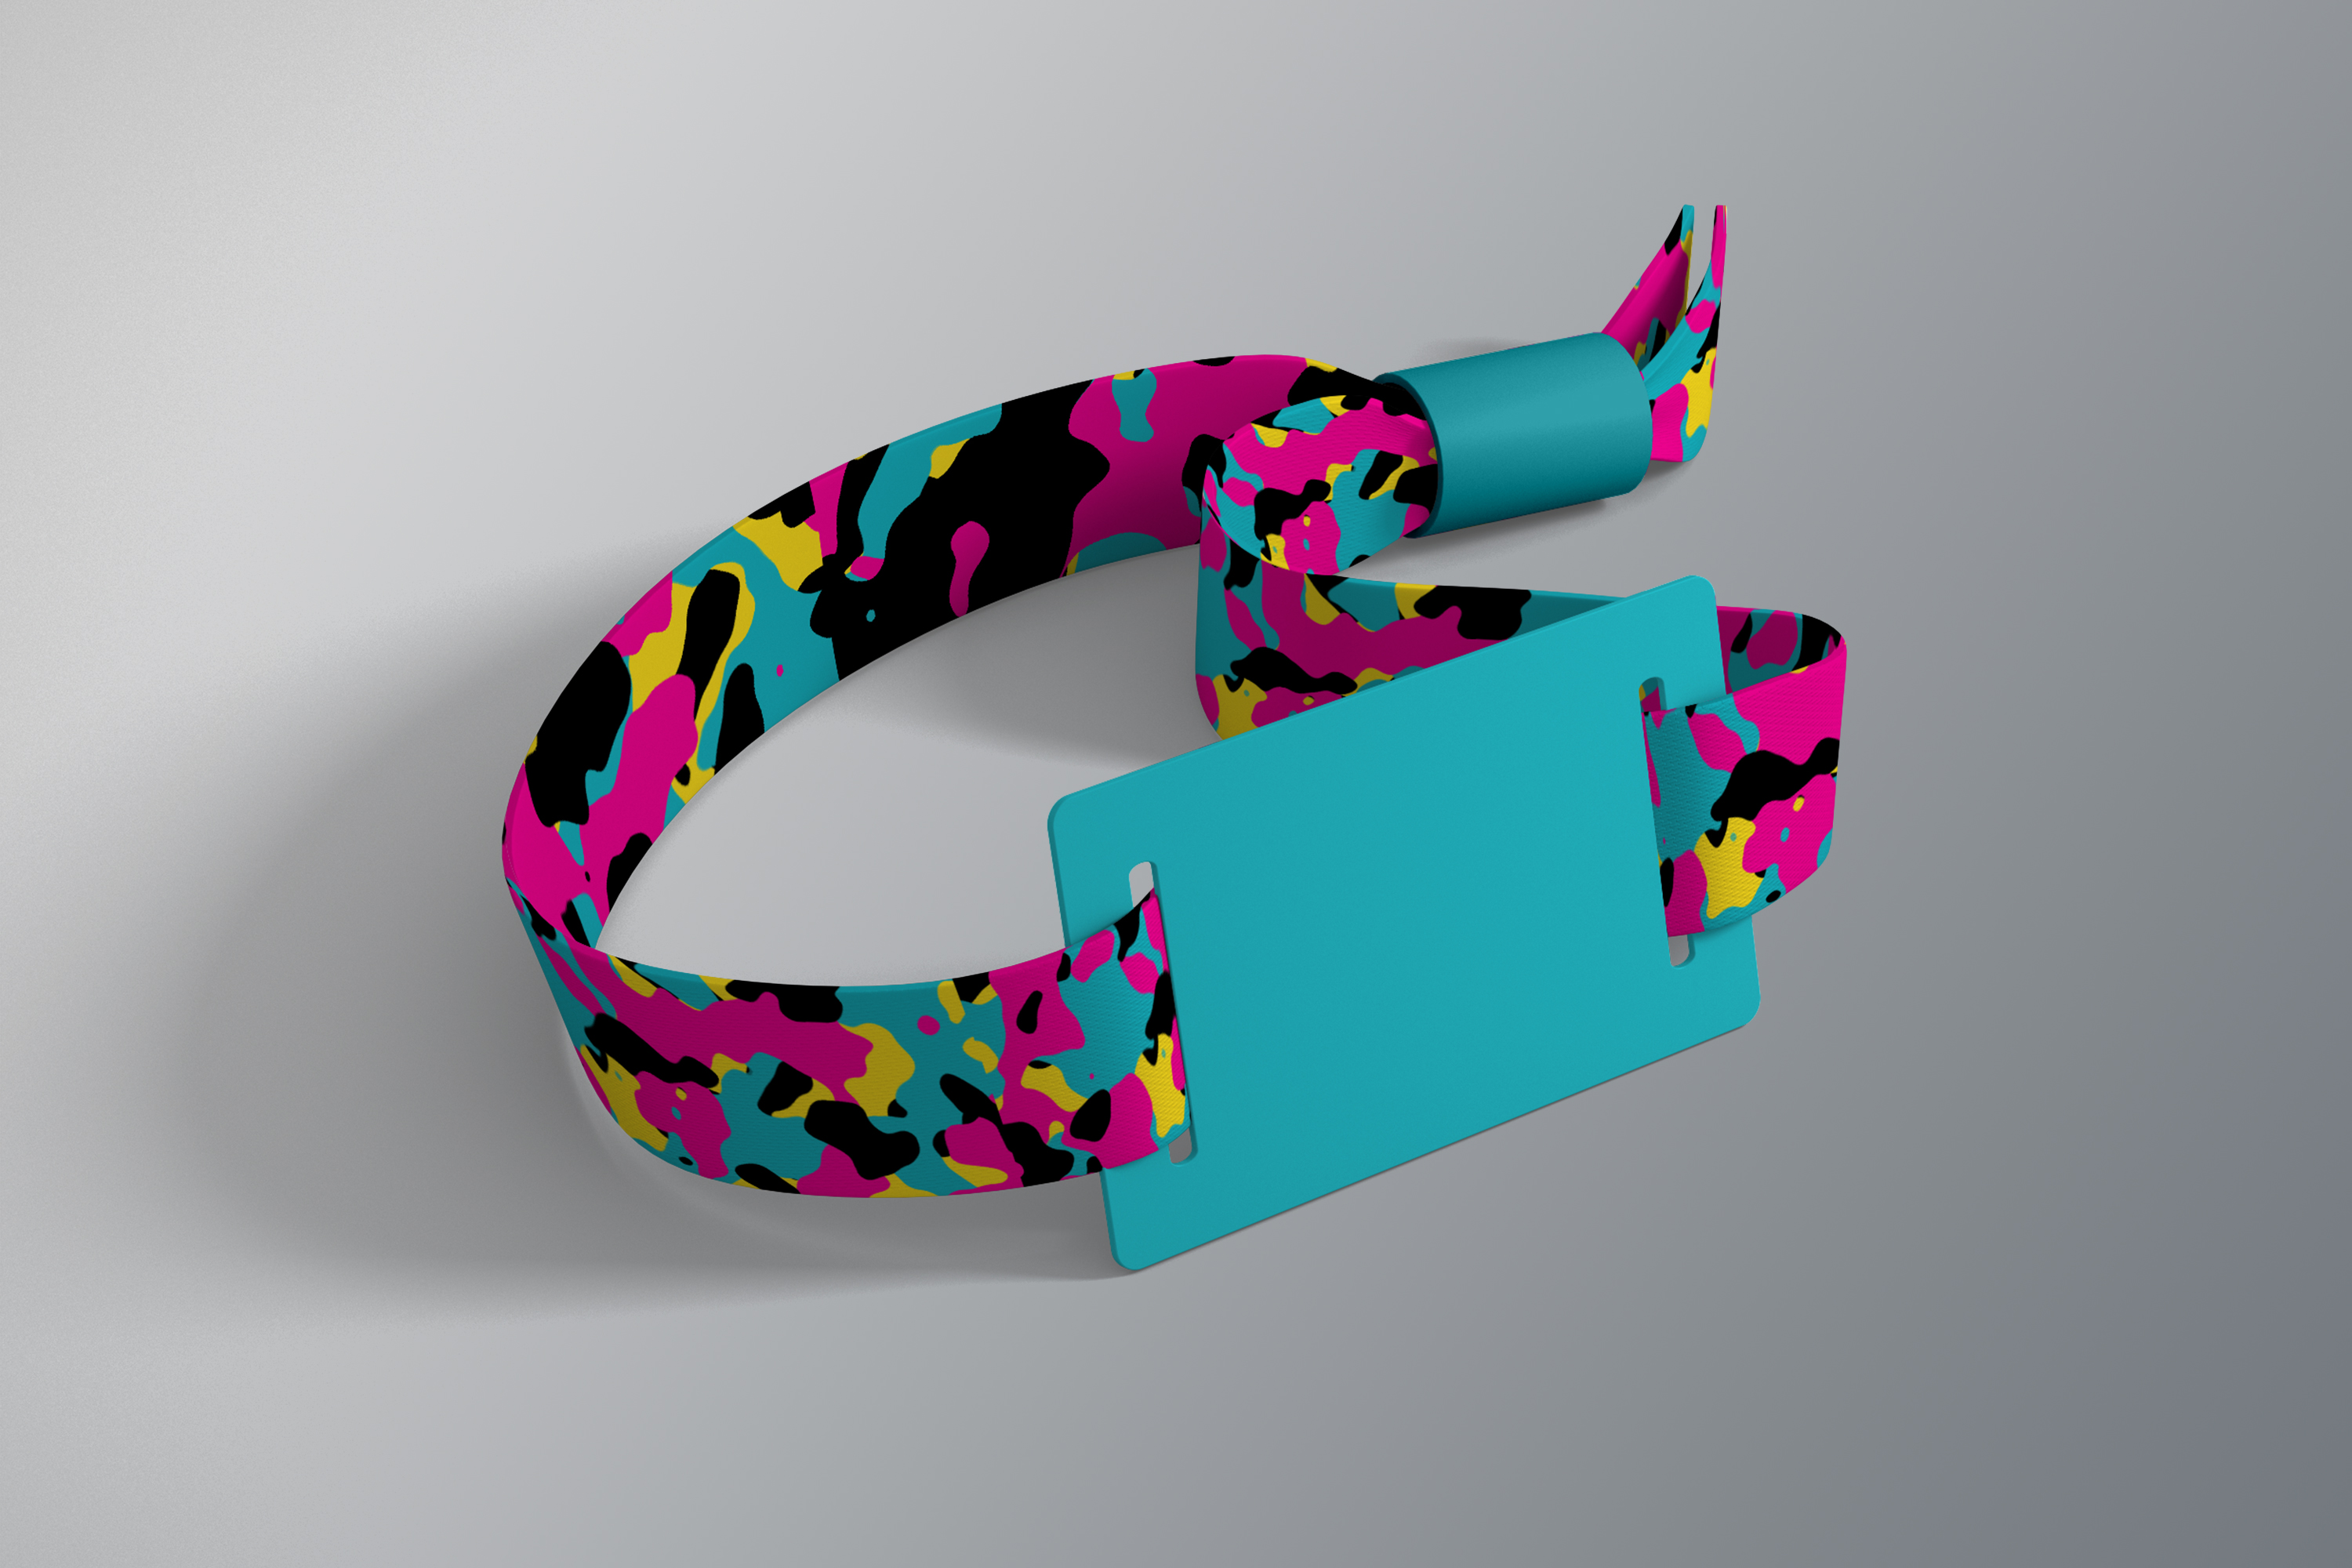 40 Alternative Camouflage Paper Designs example image 8